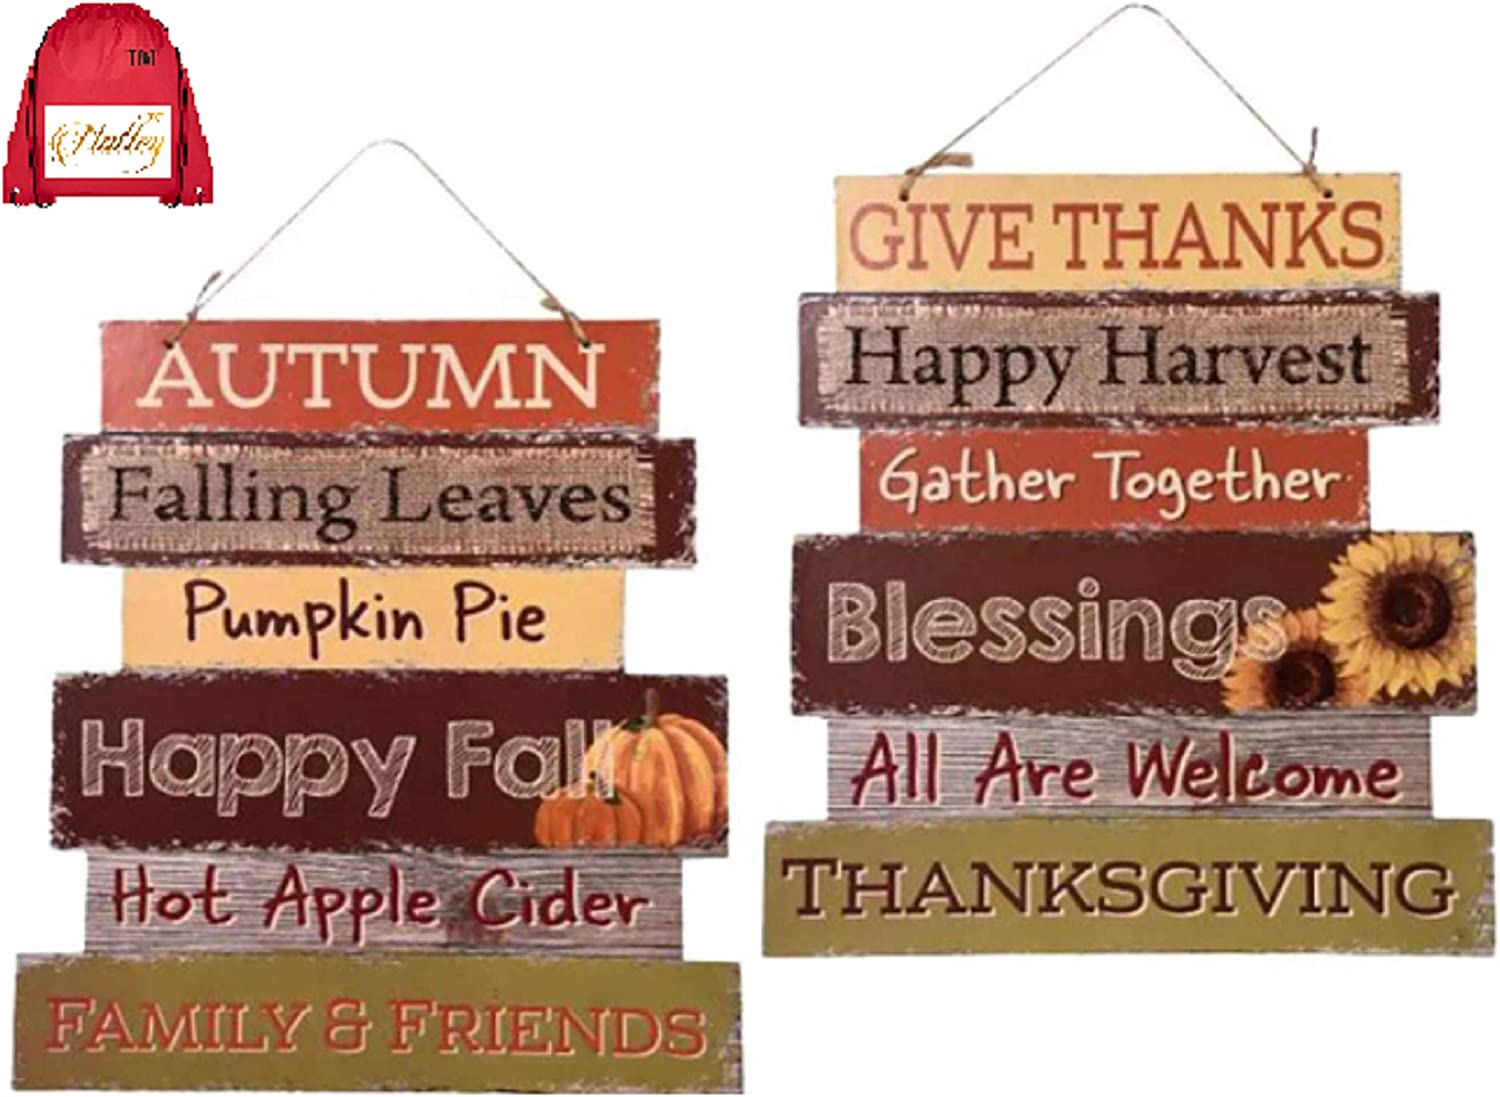 Nas Happy Fall Autumn Decoration Wall Hanging Door Farmhouse Welcome Wood Sign Thanksgiving and Harvest Blessings Pumpkin Gather Together Family Friends (Bundled with Exclusive Fallhiyab-TM) Set of 2